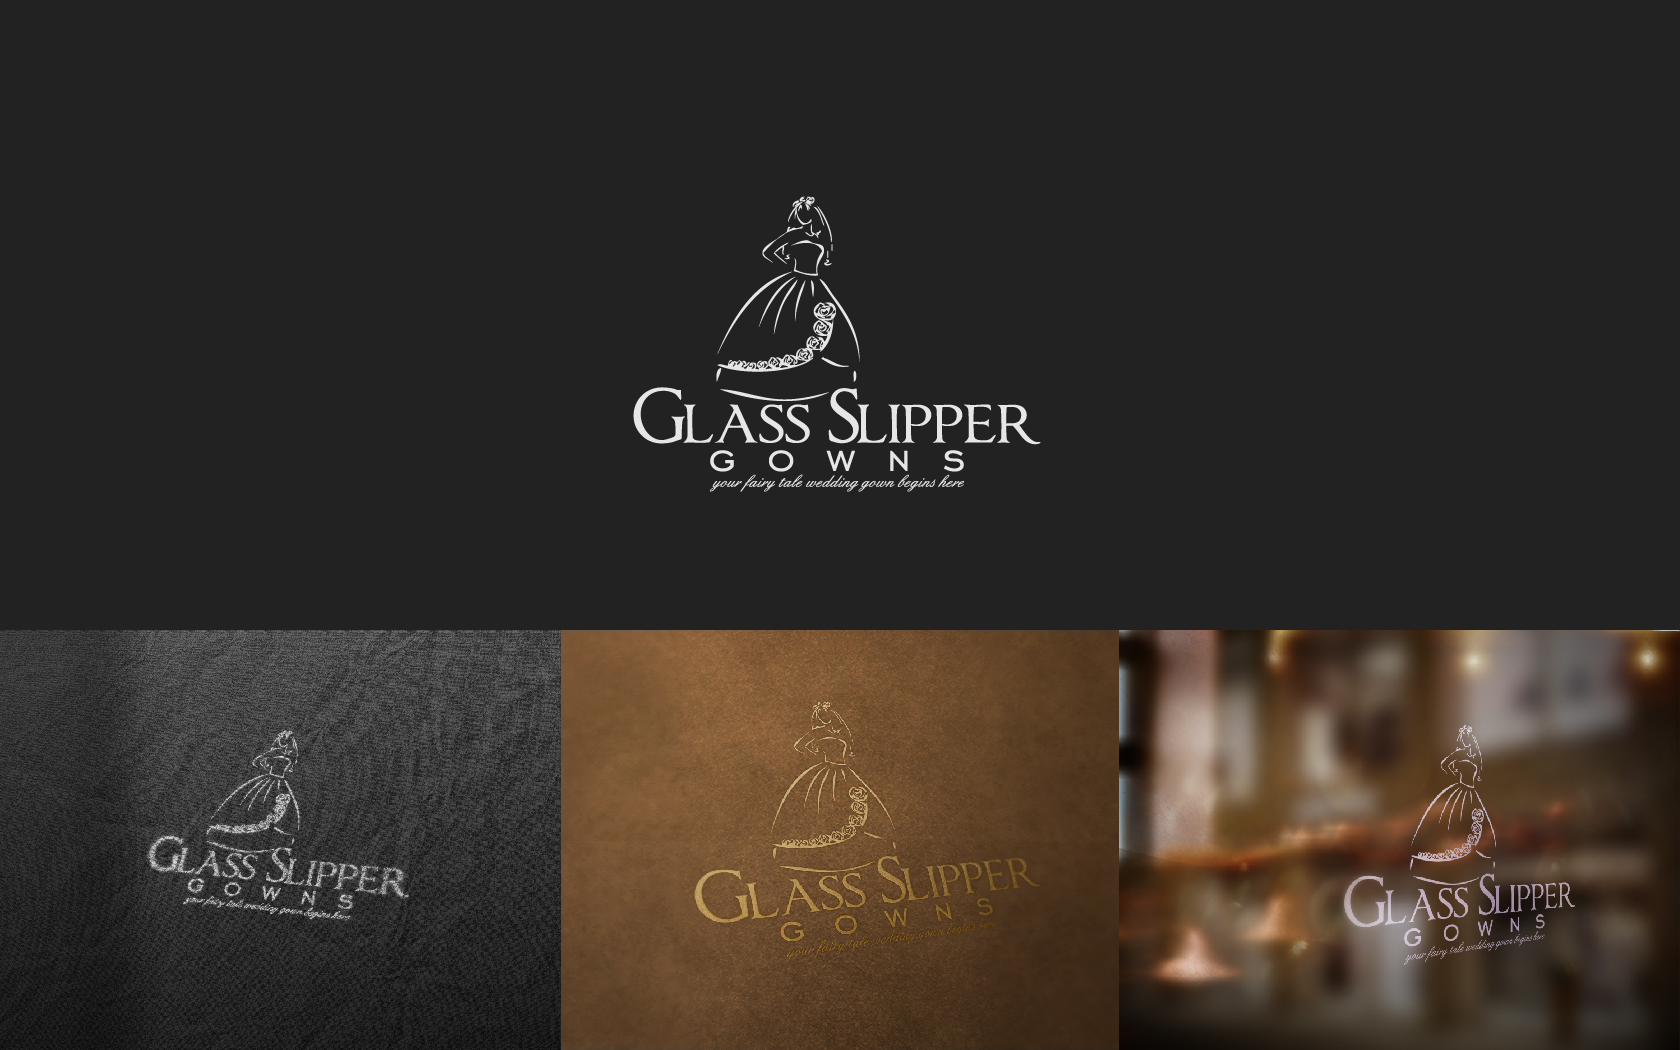 Logo Design by Valentin Zbant - Entry No. 74 in the Logo Design Contest New Logo Design for Glass Slipper Gowns.